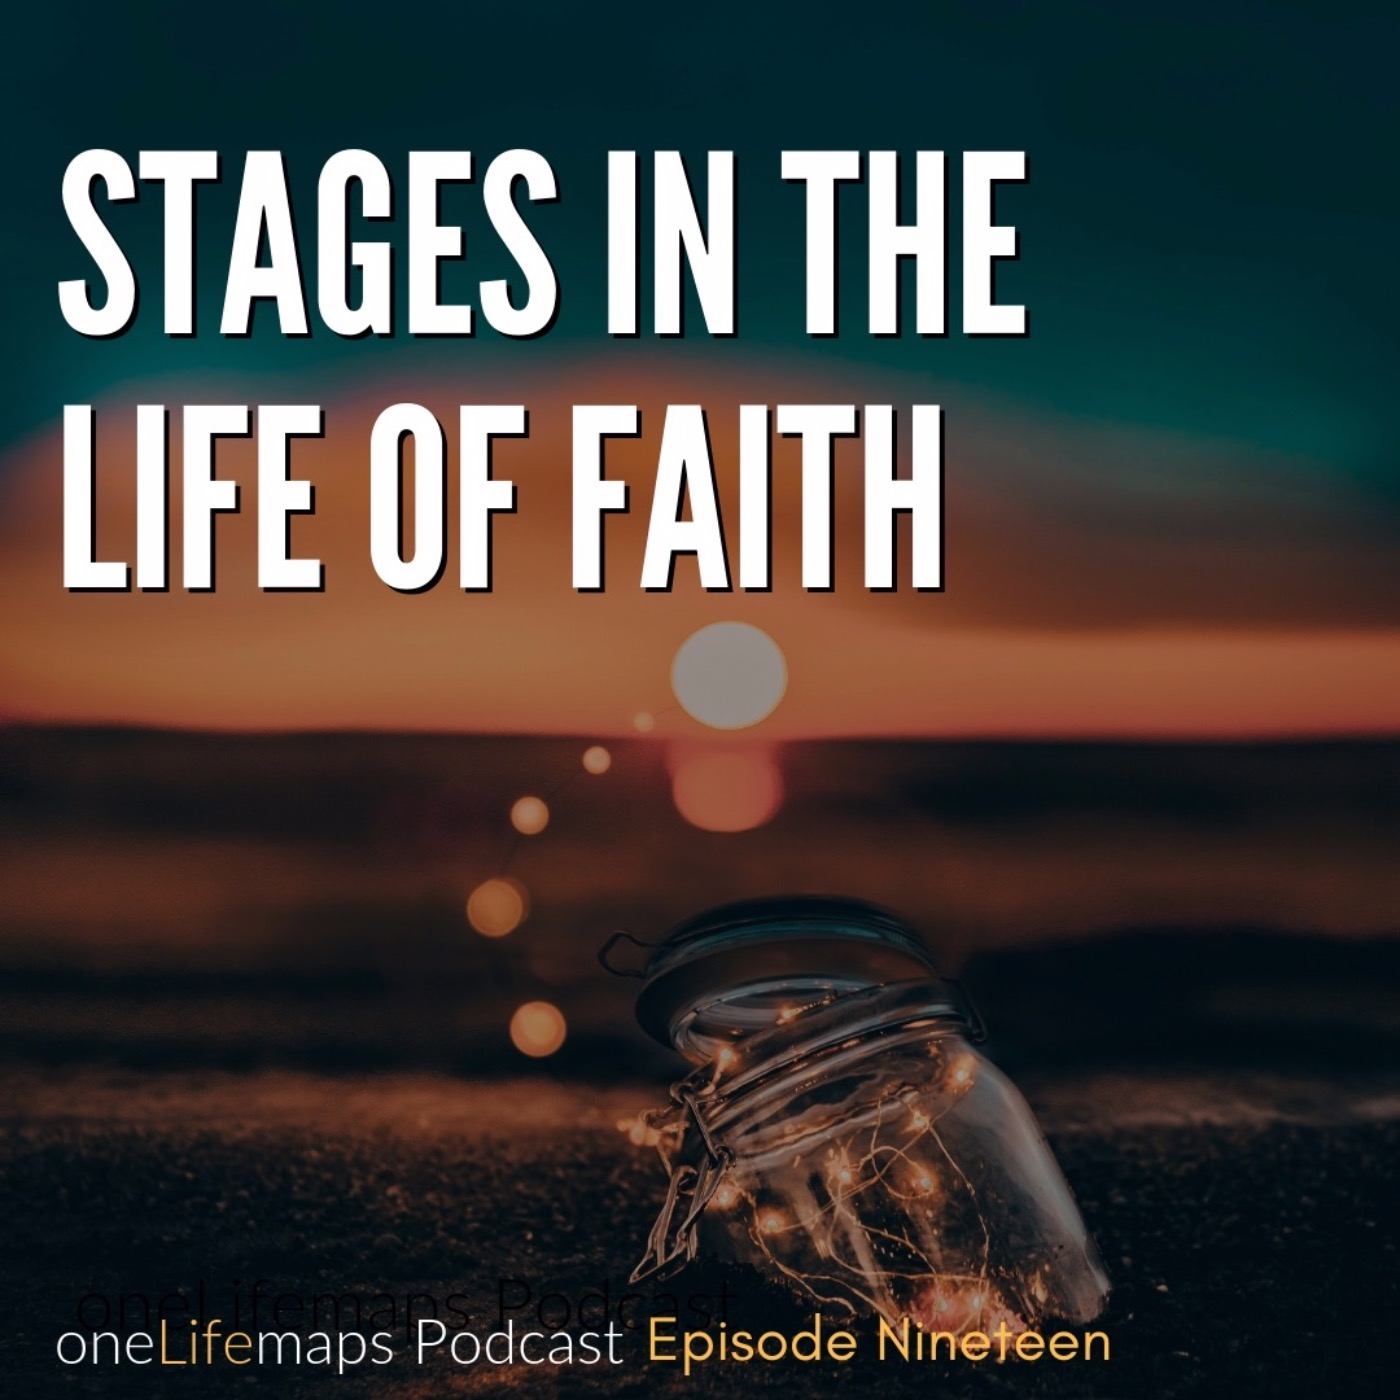 Stages in the Life of Faith